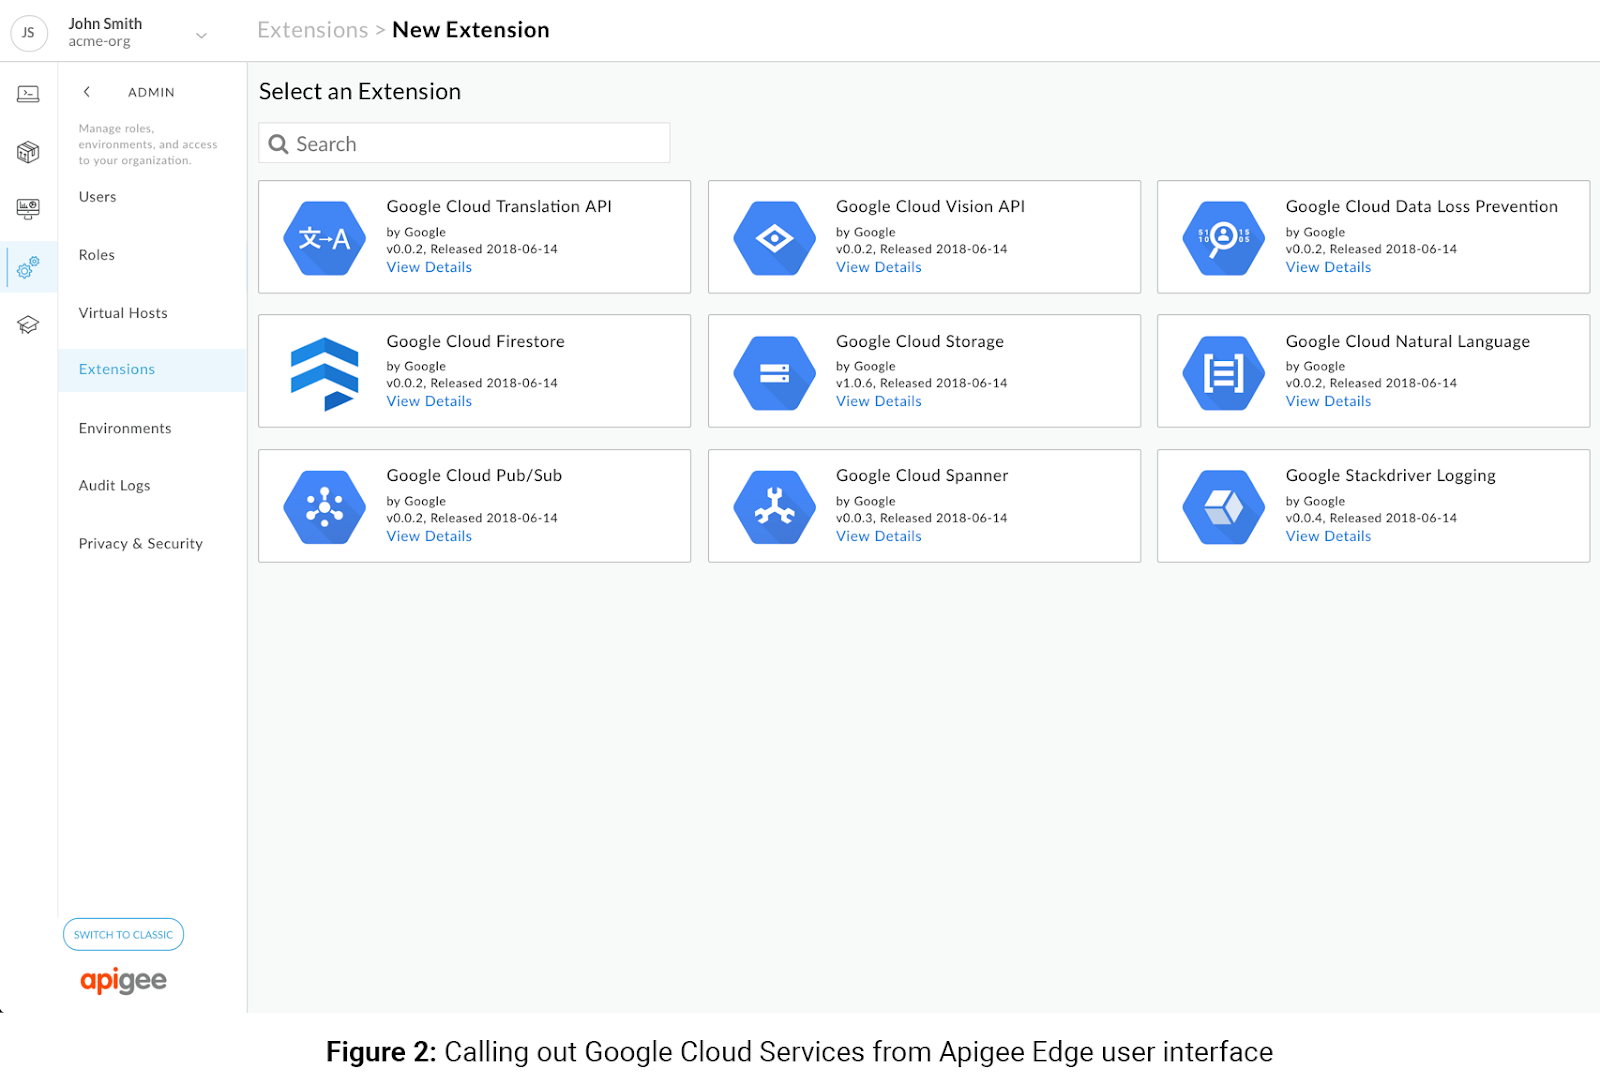 Calling out Google Cloud services from apigee edge